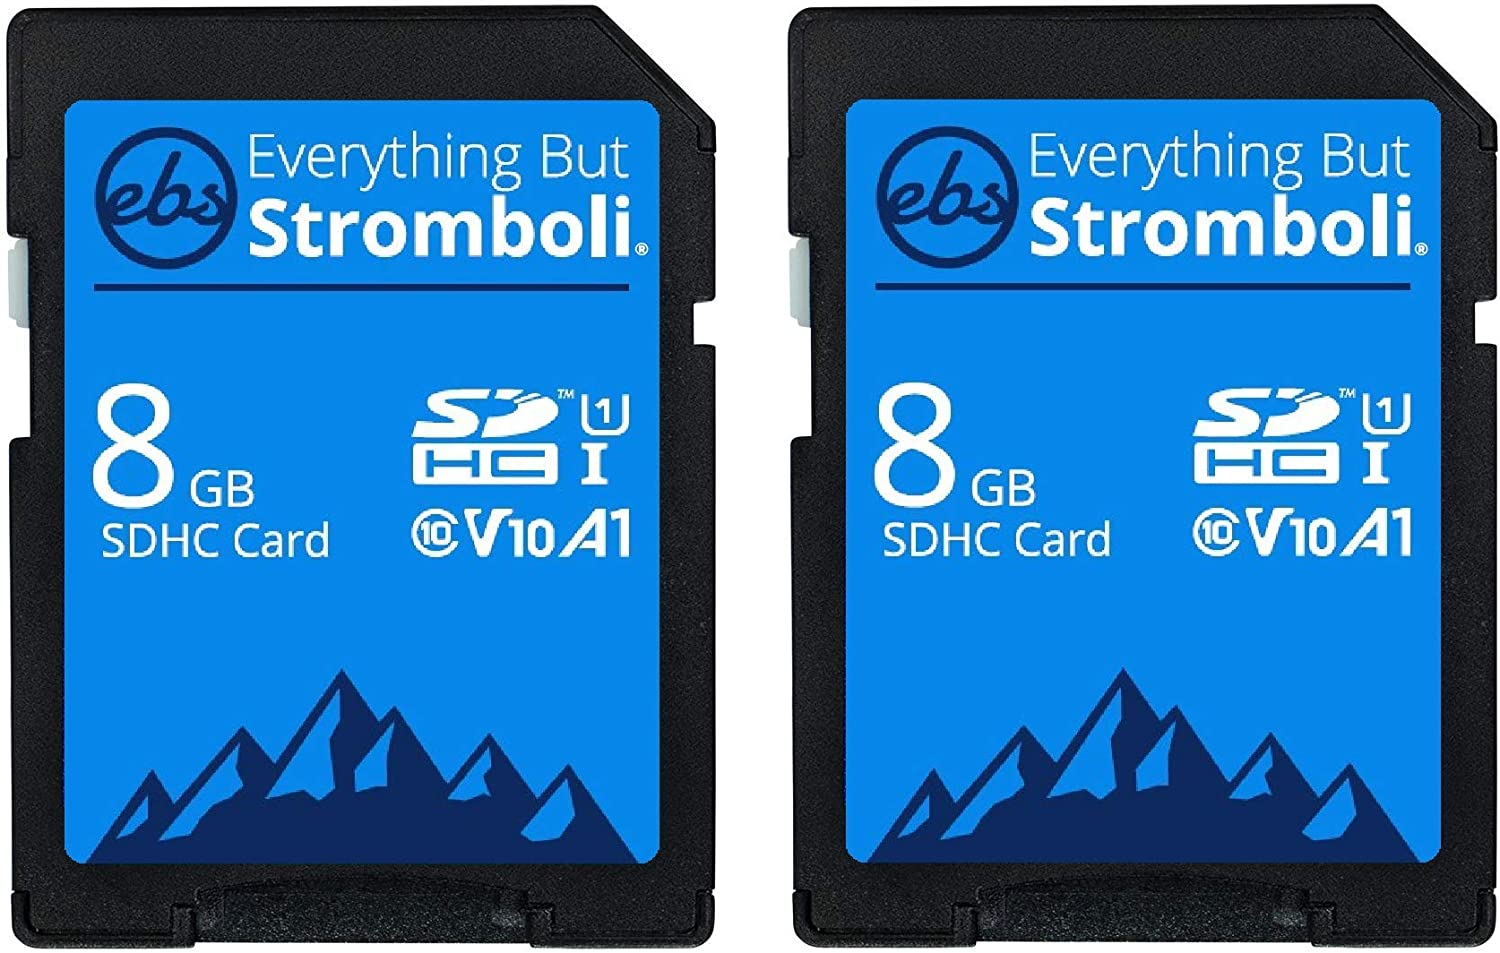 Everything But Stromboli 2 Pack 8GB SD Card for Browning Trail Camera Recon Force, Strike Force, Defender, Spec Ops, Patriot, Dark Ops Game Cam SDHC Memory Cards